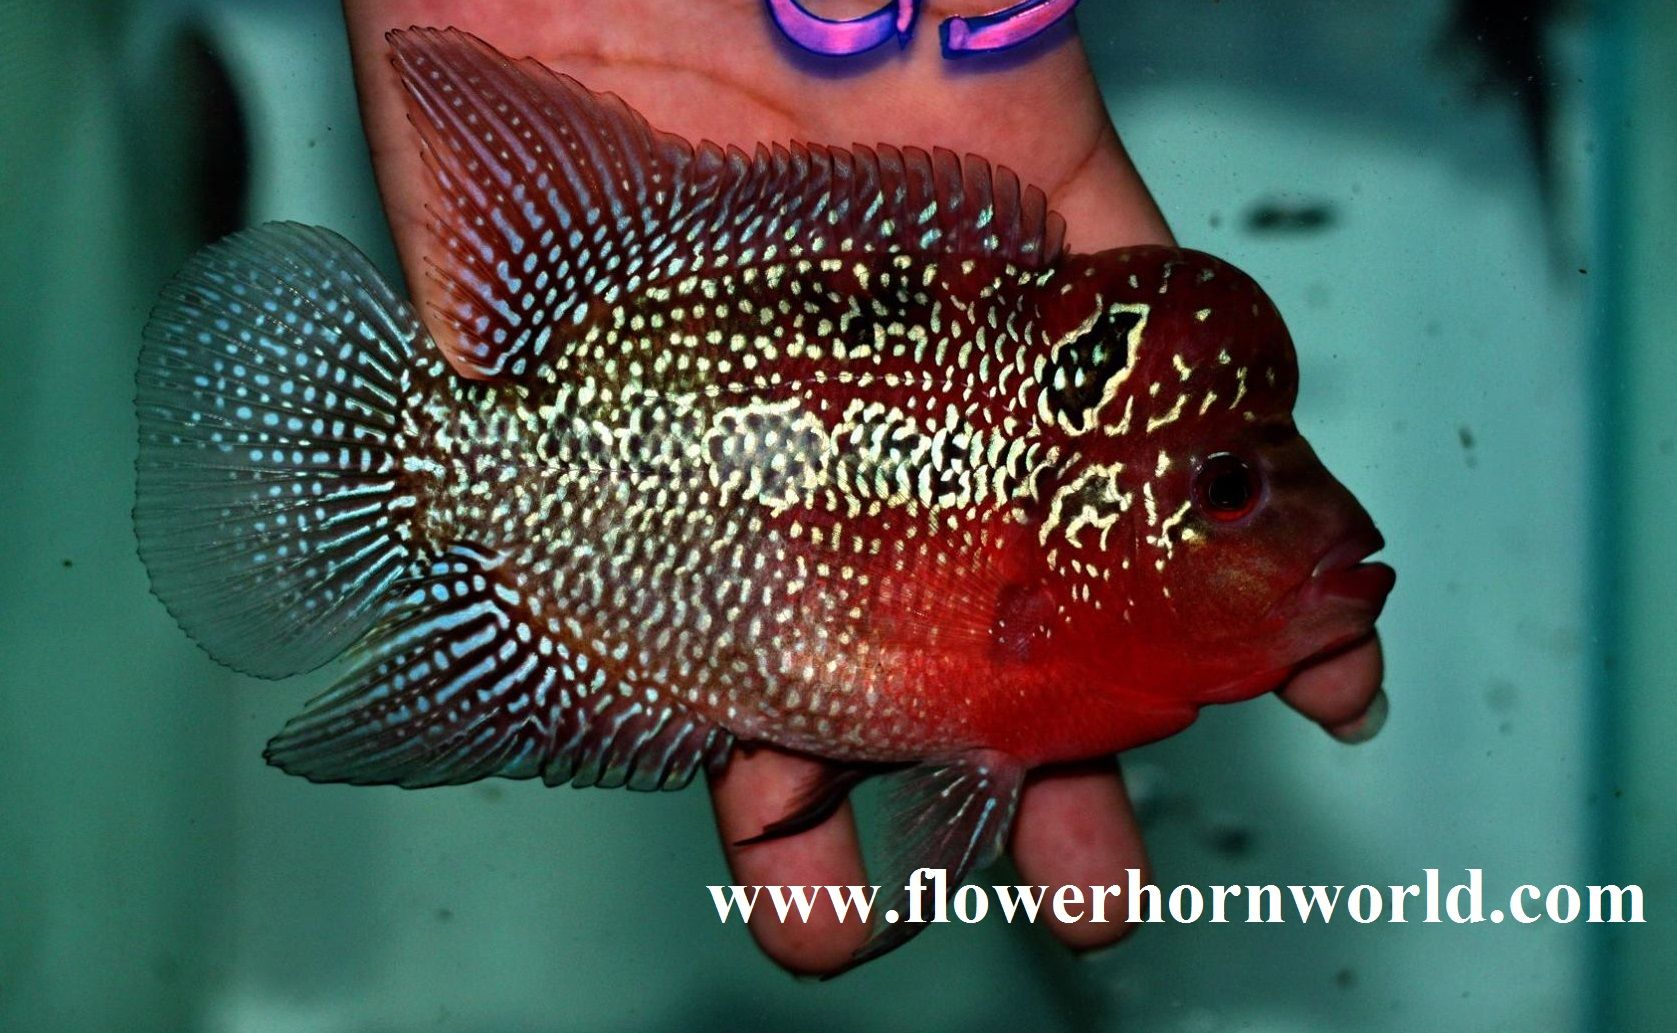 Pin by thaiFH.com on Current stock - Flowerhorn fish for sale www ...